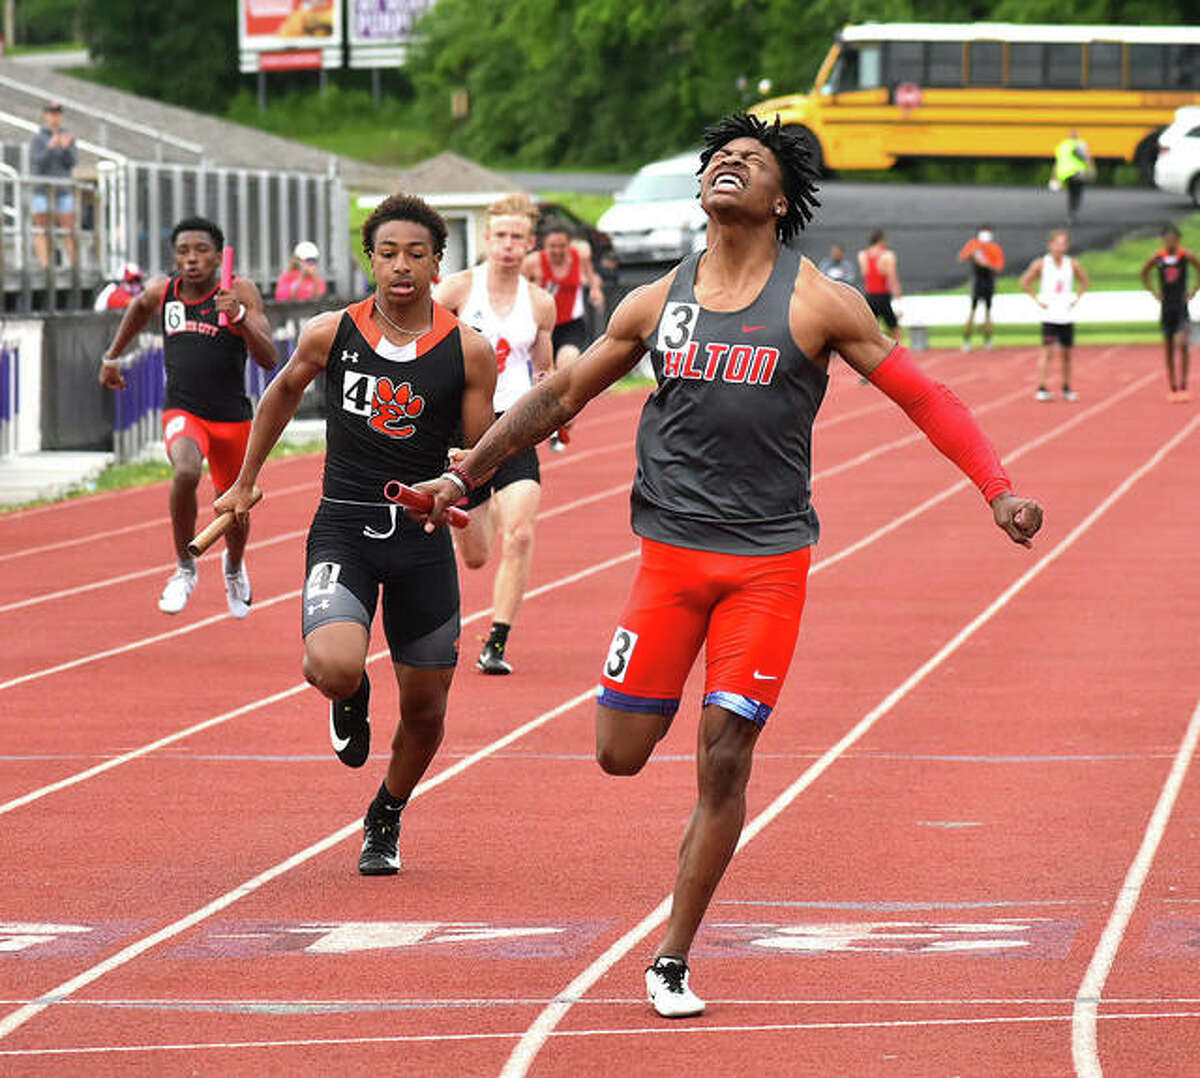 Alton's Marty Boey (right) crosses the finish line to to bring home the Redbirds' victory in the 4x100 relay Tuesday at the Madison County Large-Schools track meet at Collinsville.